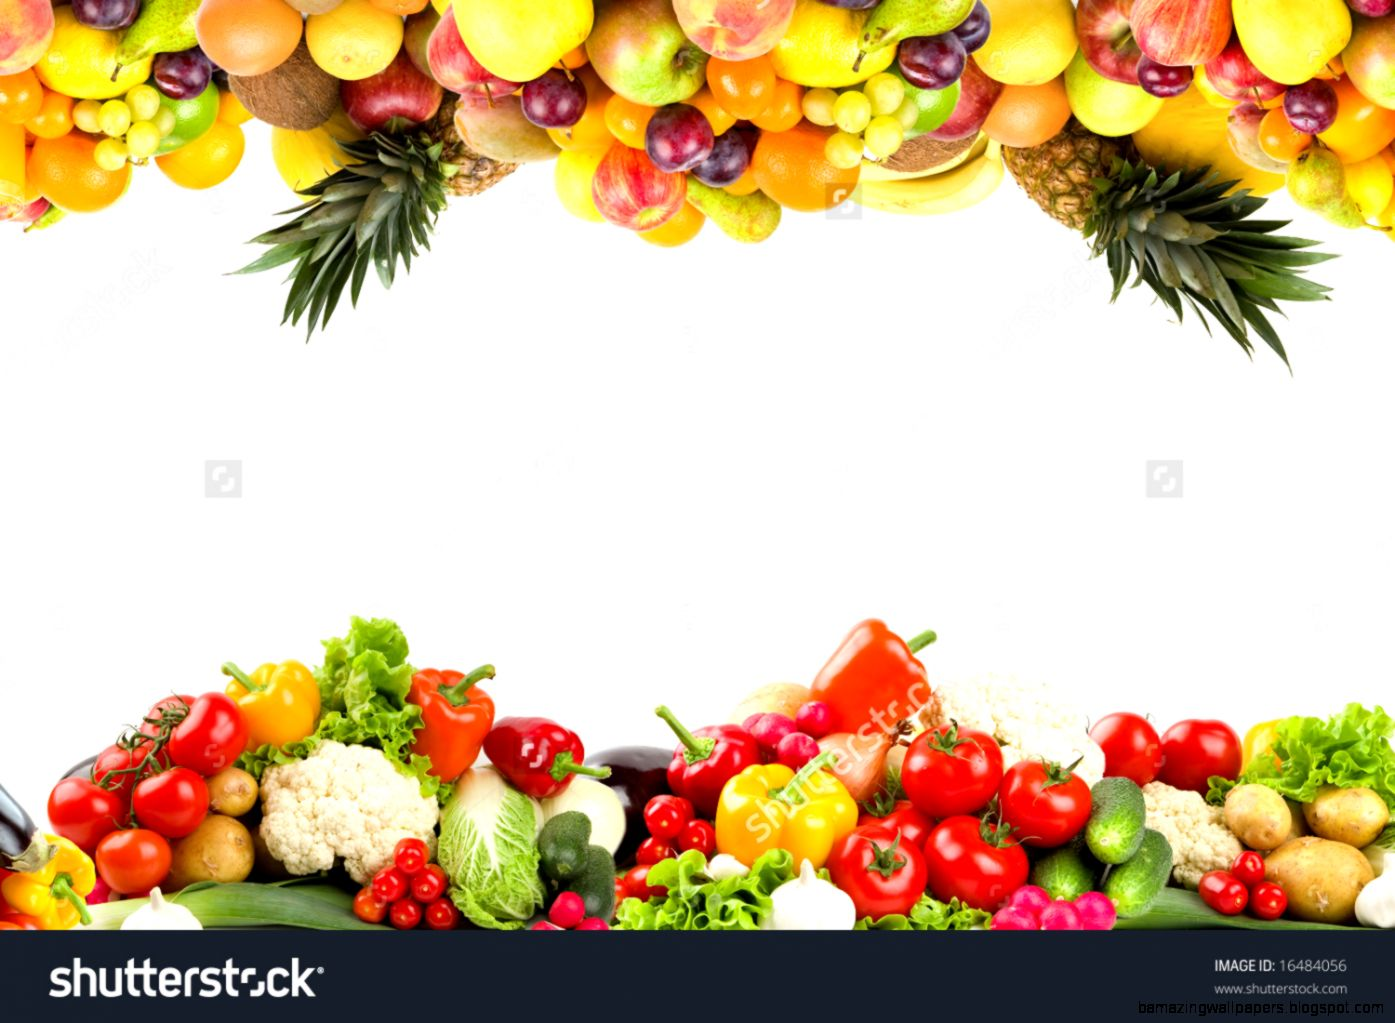 Fruit And Vegetable Borders Stock Photo 16484056  Shutterstock